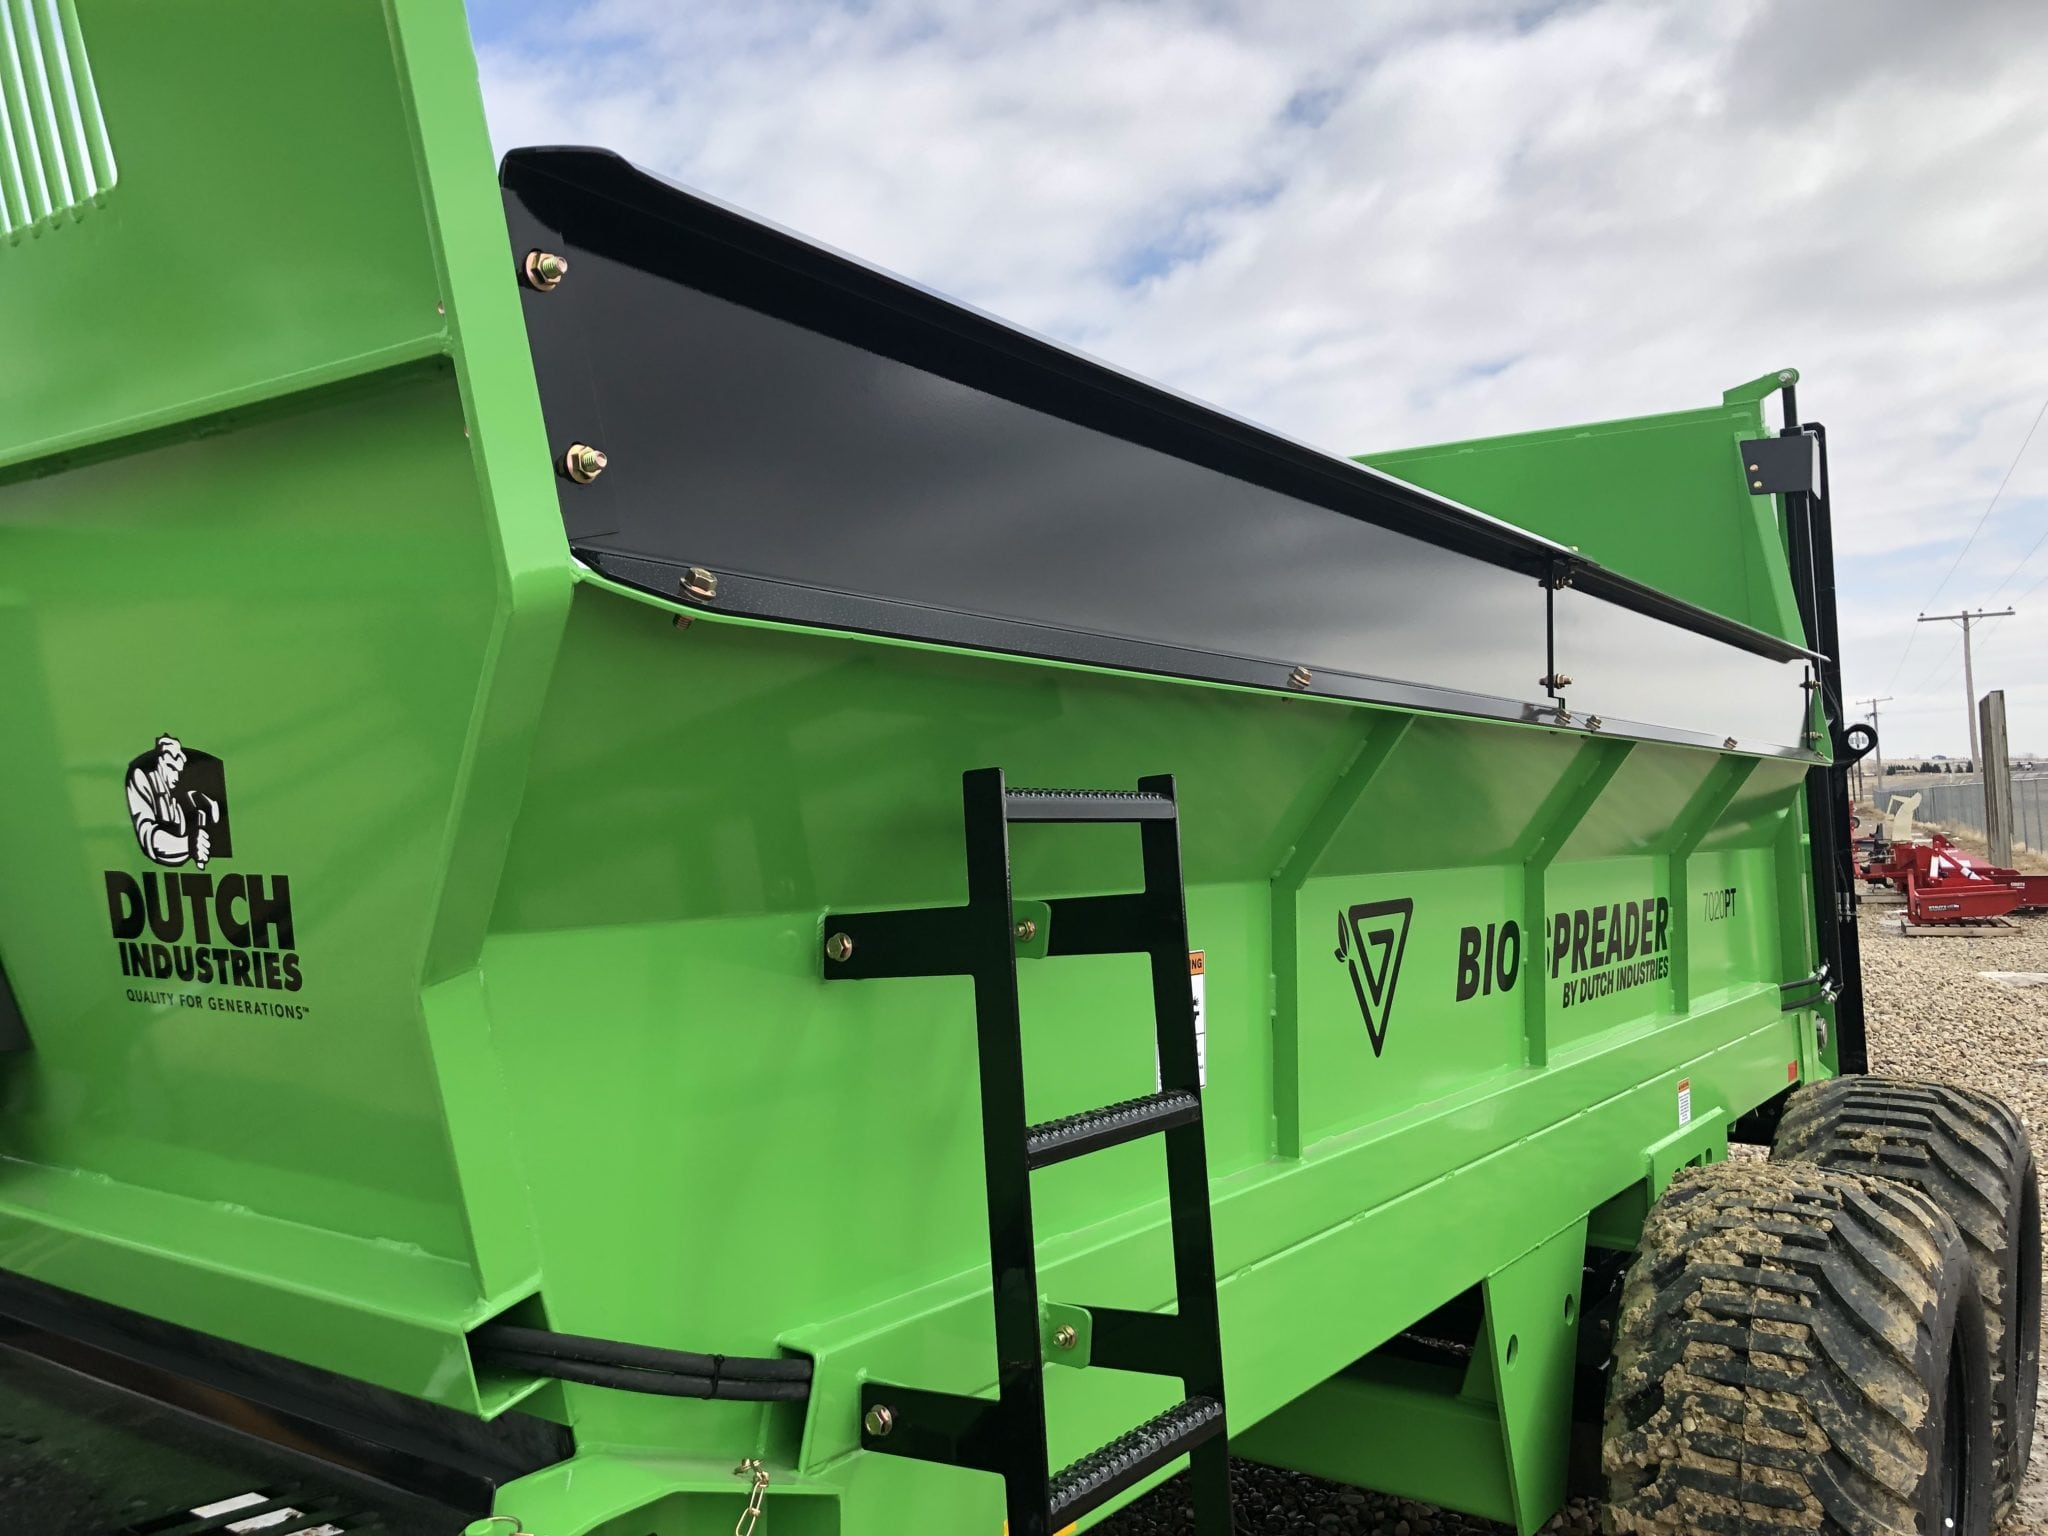 Dutch-BioSpreader-Manure-Spreader-Side-Extensions-Vertical-Beater-2